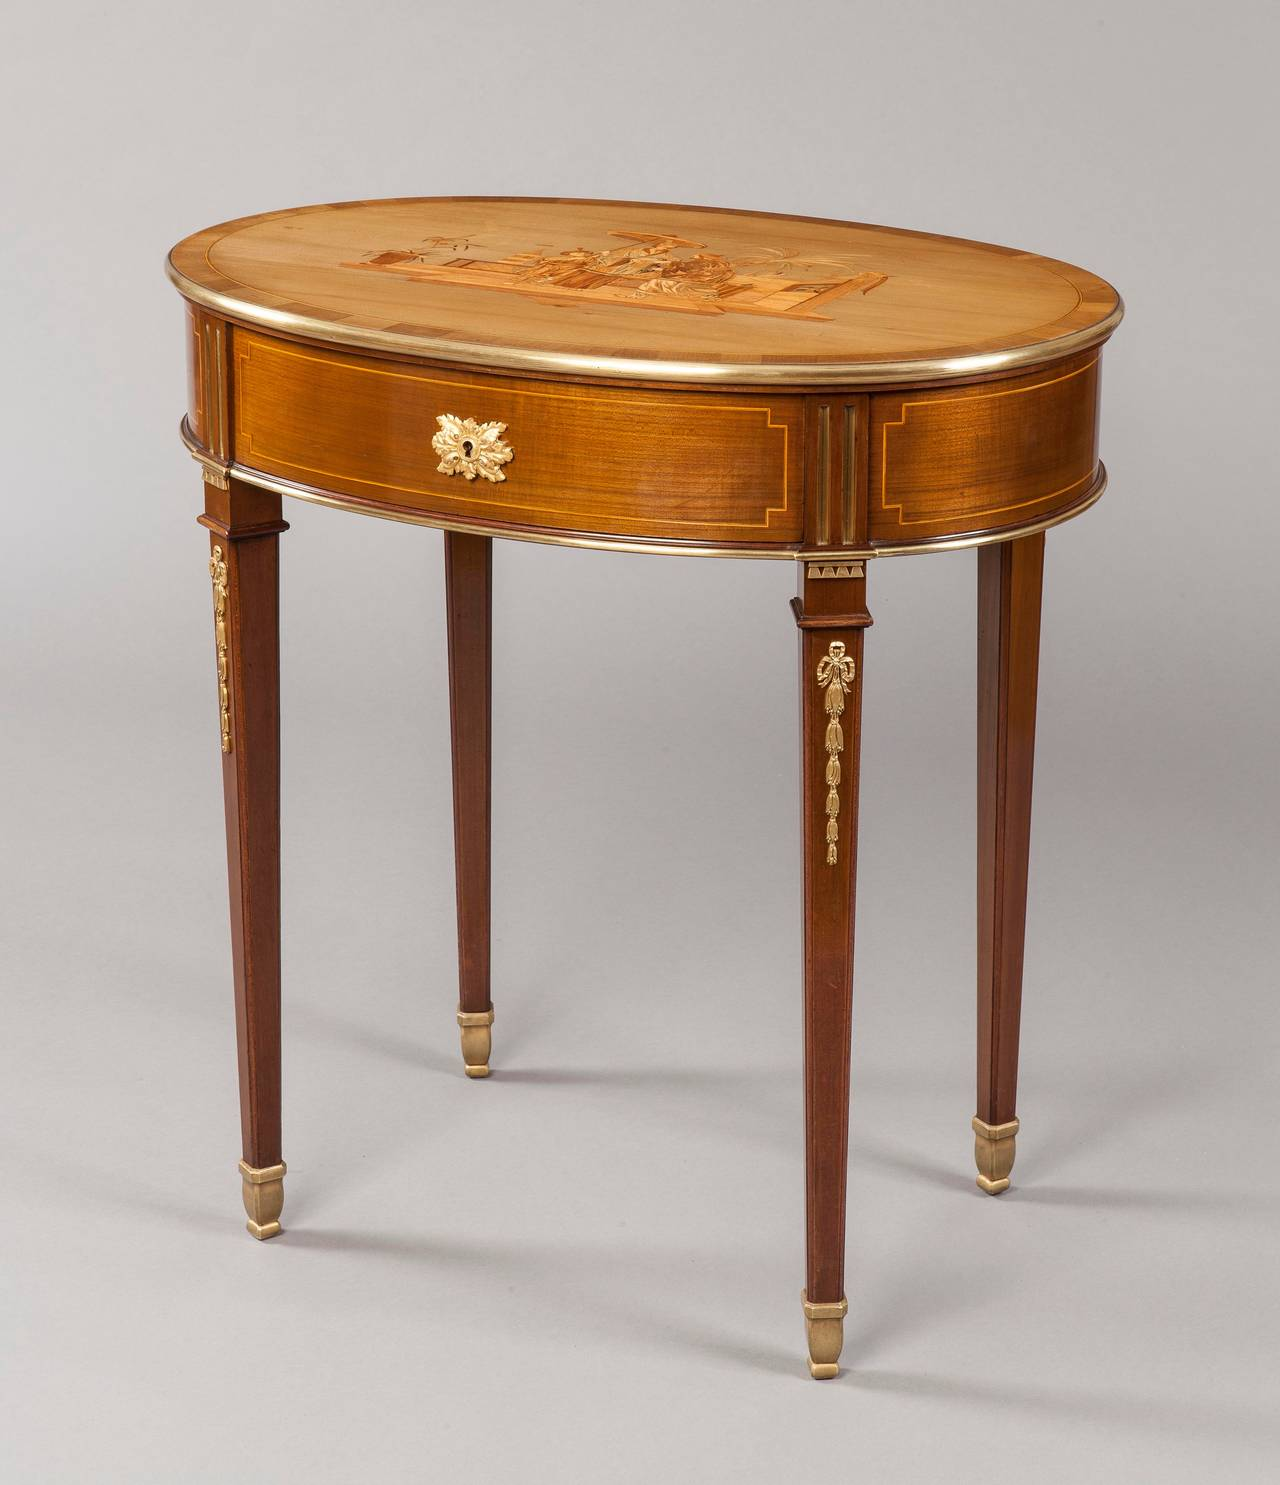 French antique marquetry occasional table at stdibs